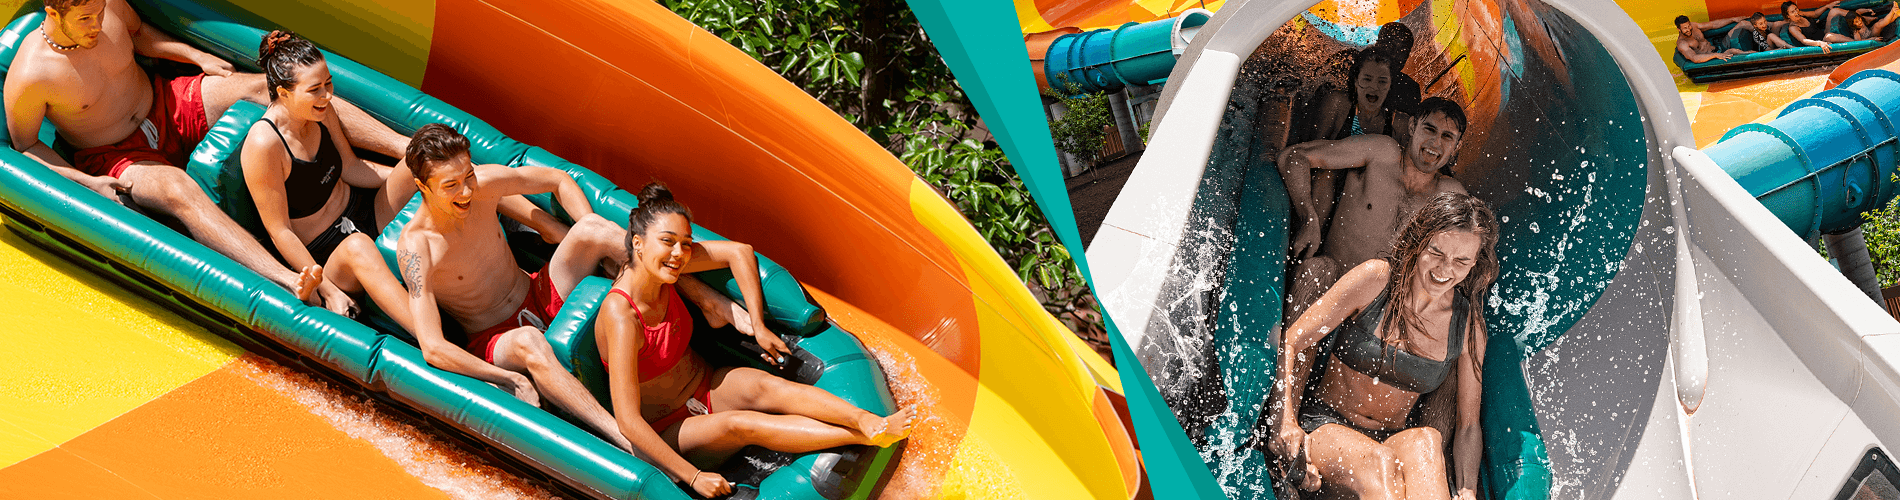 Virginia's first water coaster, Cutback Watercoaster, new for 2019 at Water Country USA